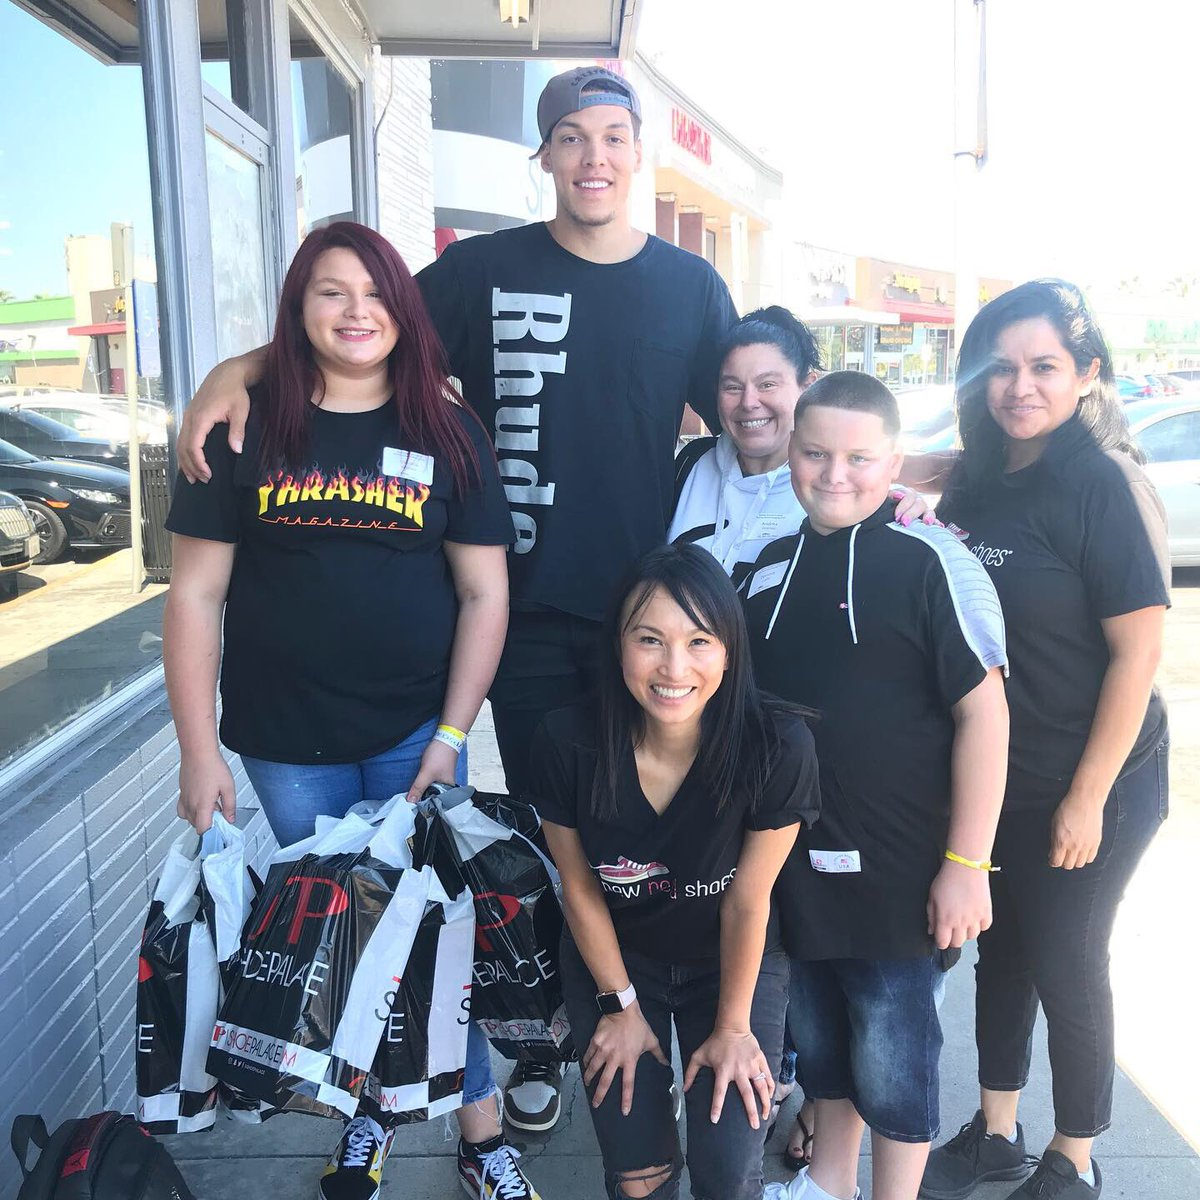 We were thrilled to host 25 struggling San Jose families at a back-to-school shopping spree today. Special thanks to @Double0AG and @ShoePalace for making this event possible! @minhtngo